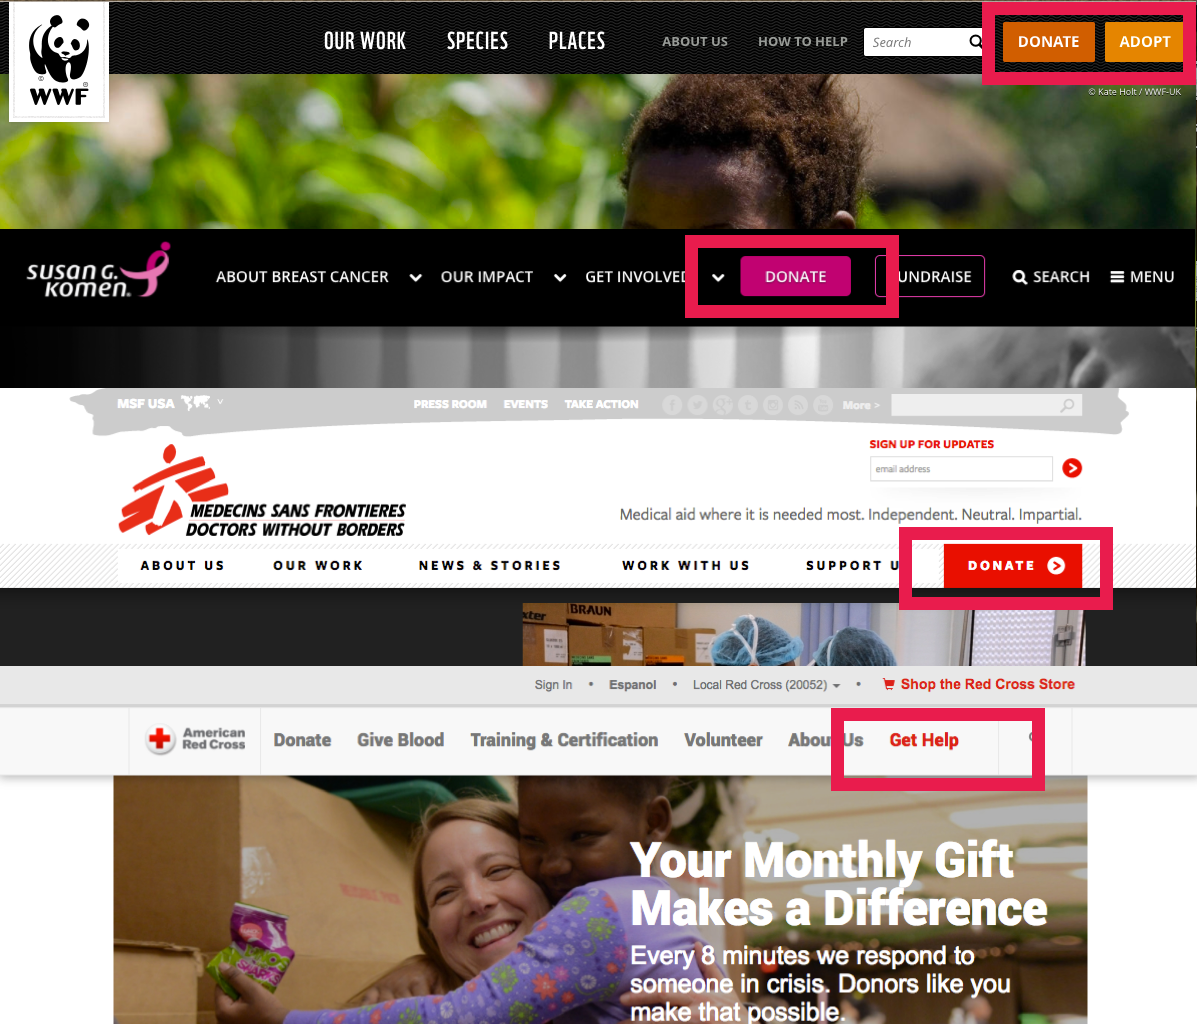 Case study of different non-profit websites, all have a prominent donate button in top right corner.